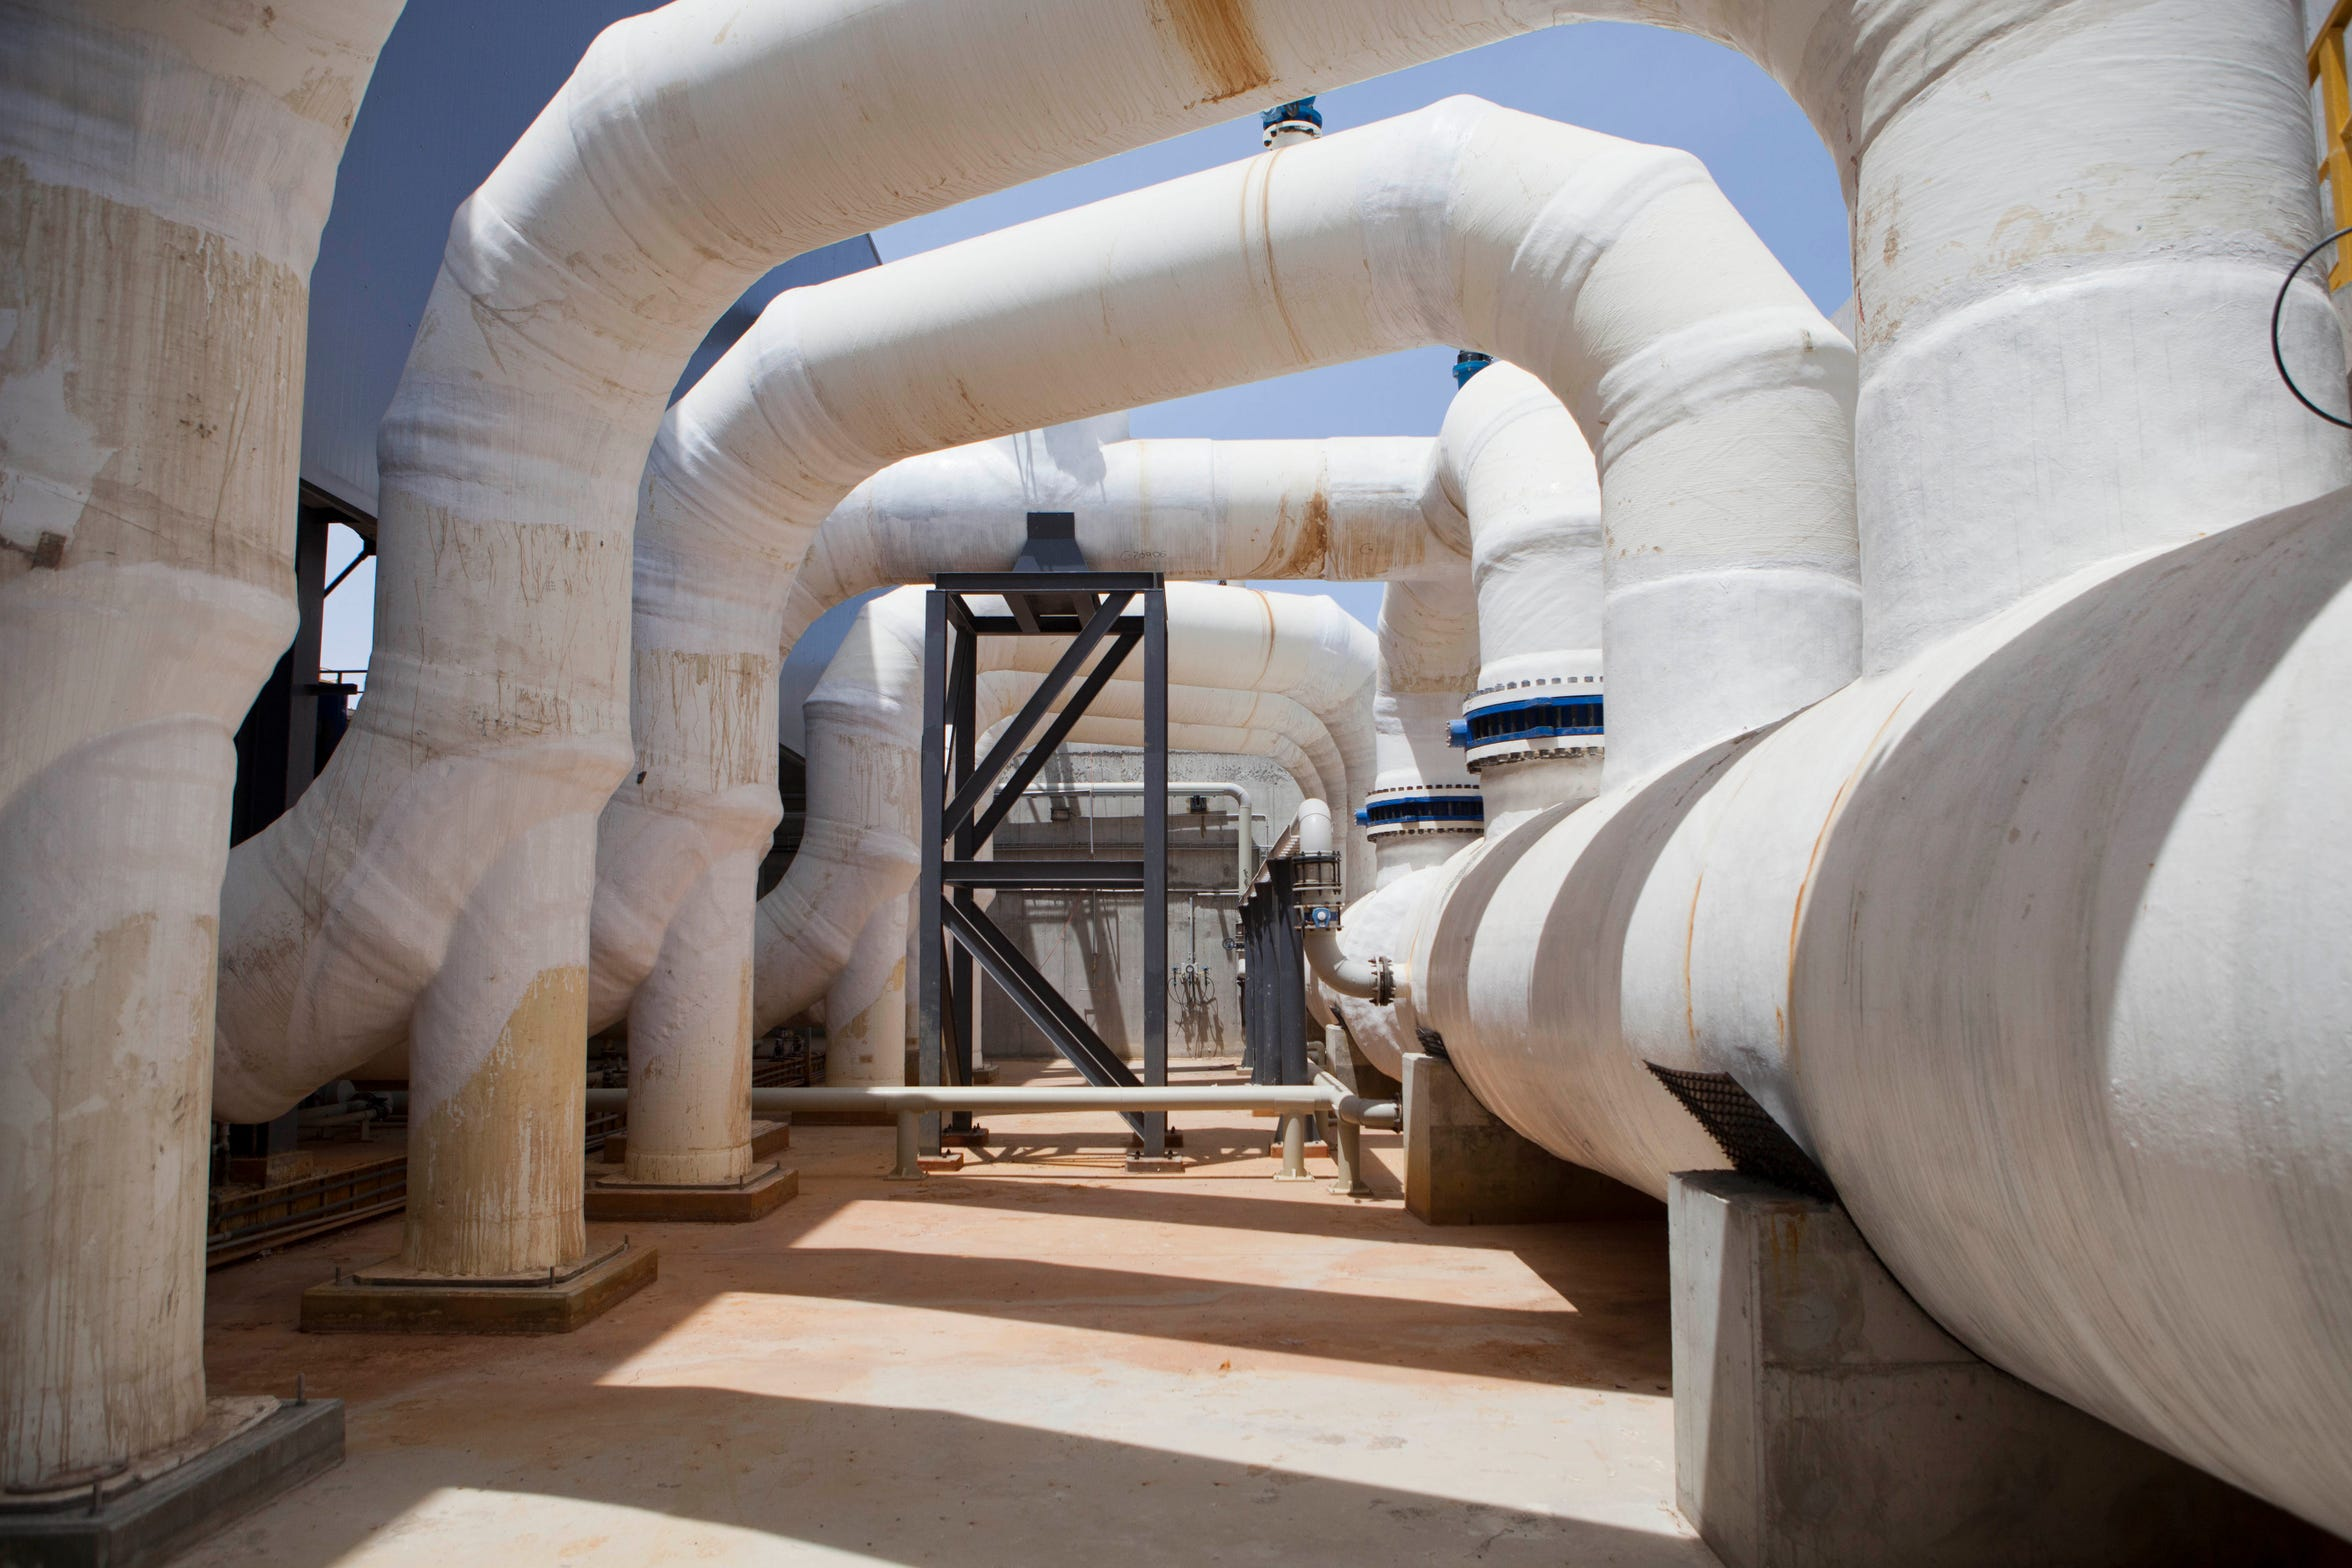 This Sunday, May 4, 2014 photo shows Sorek desalination plant in Rishon Letzion, Israel. Israel's aggressive desalination program that has transformed this perennially parched country into perhaps the most well-hydrated country in the region. (AP Photo/Dan Balilty)